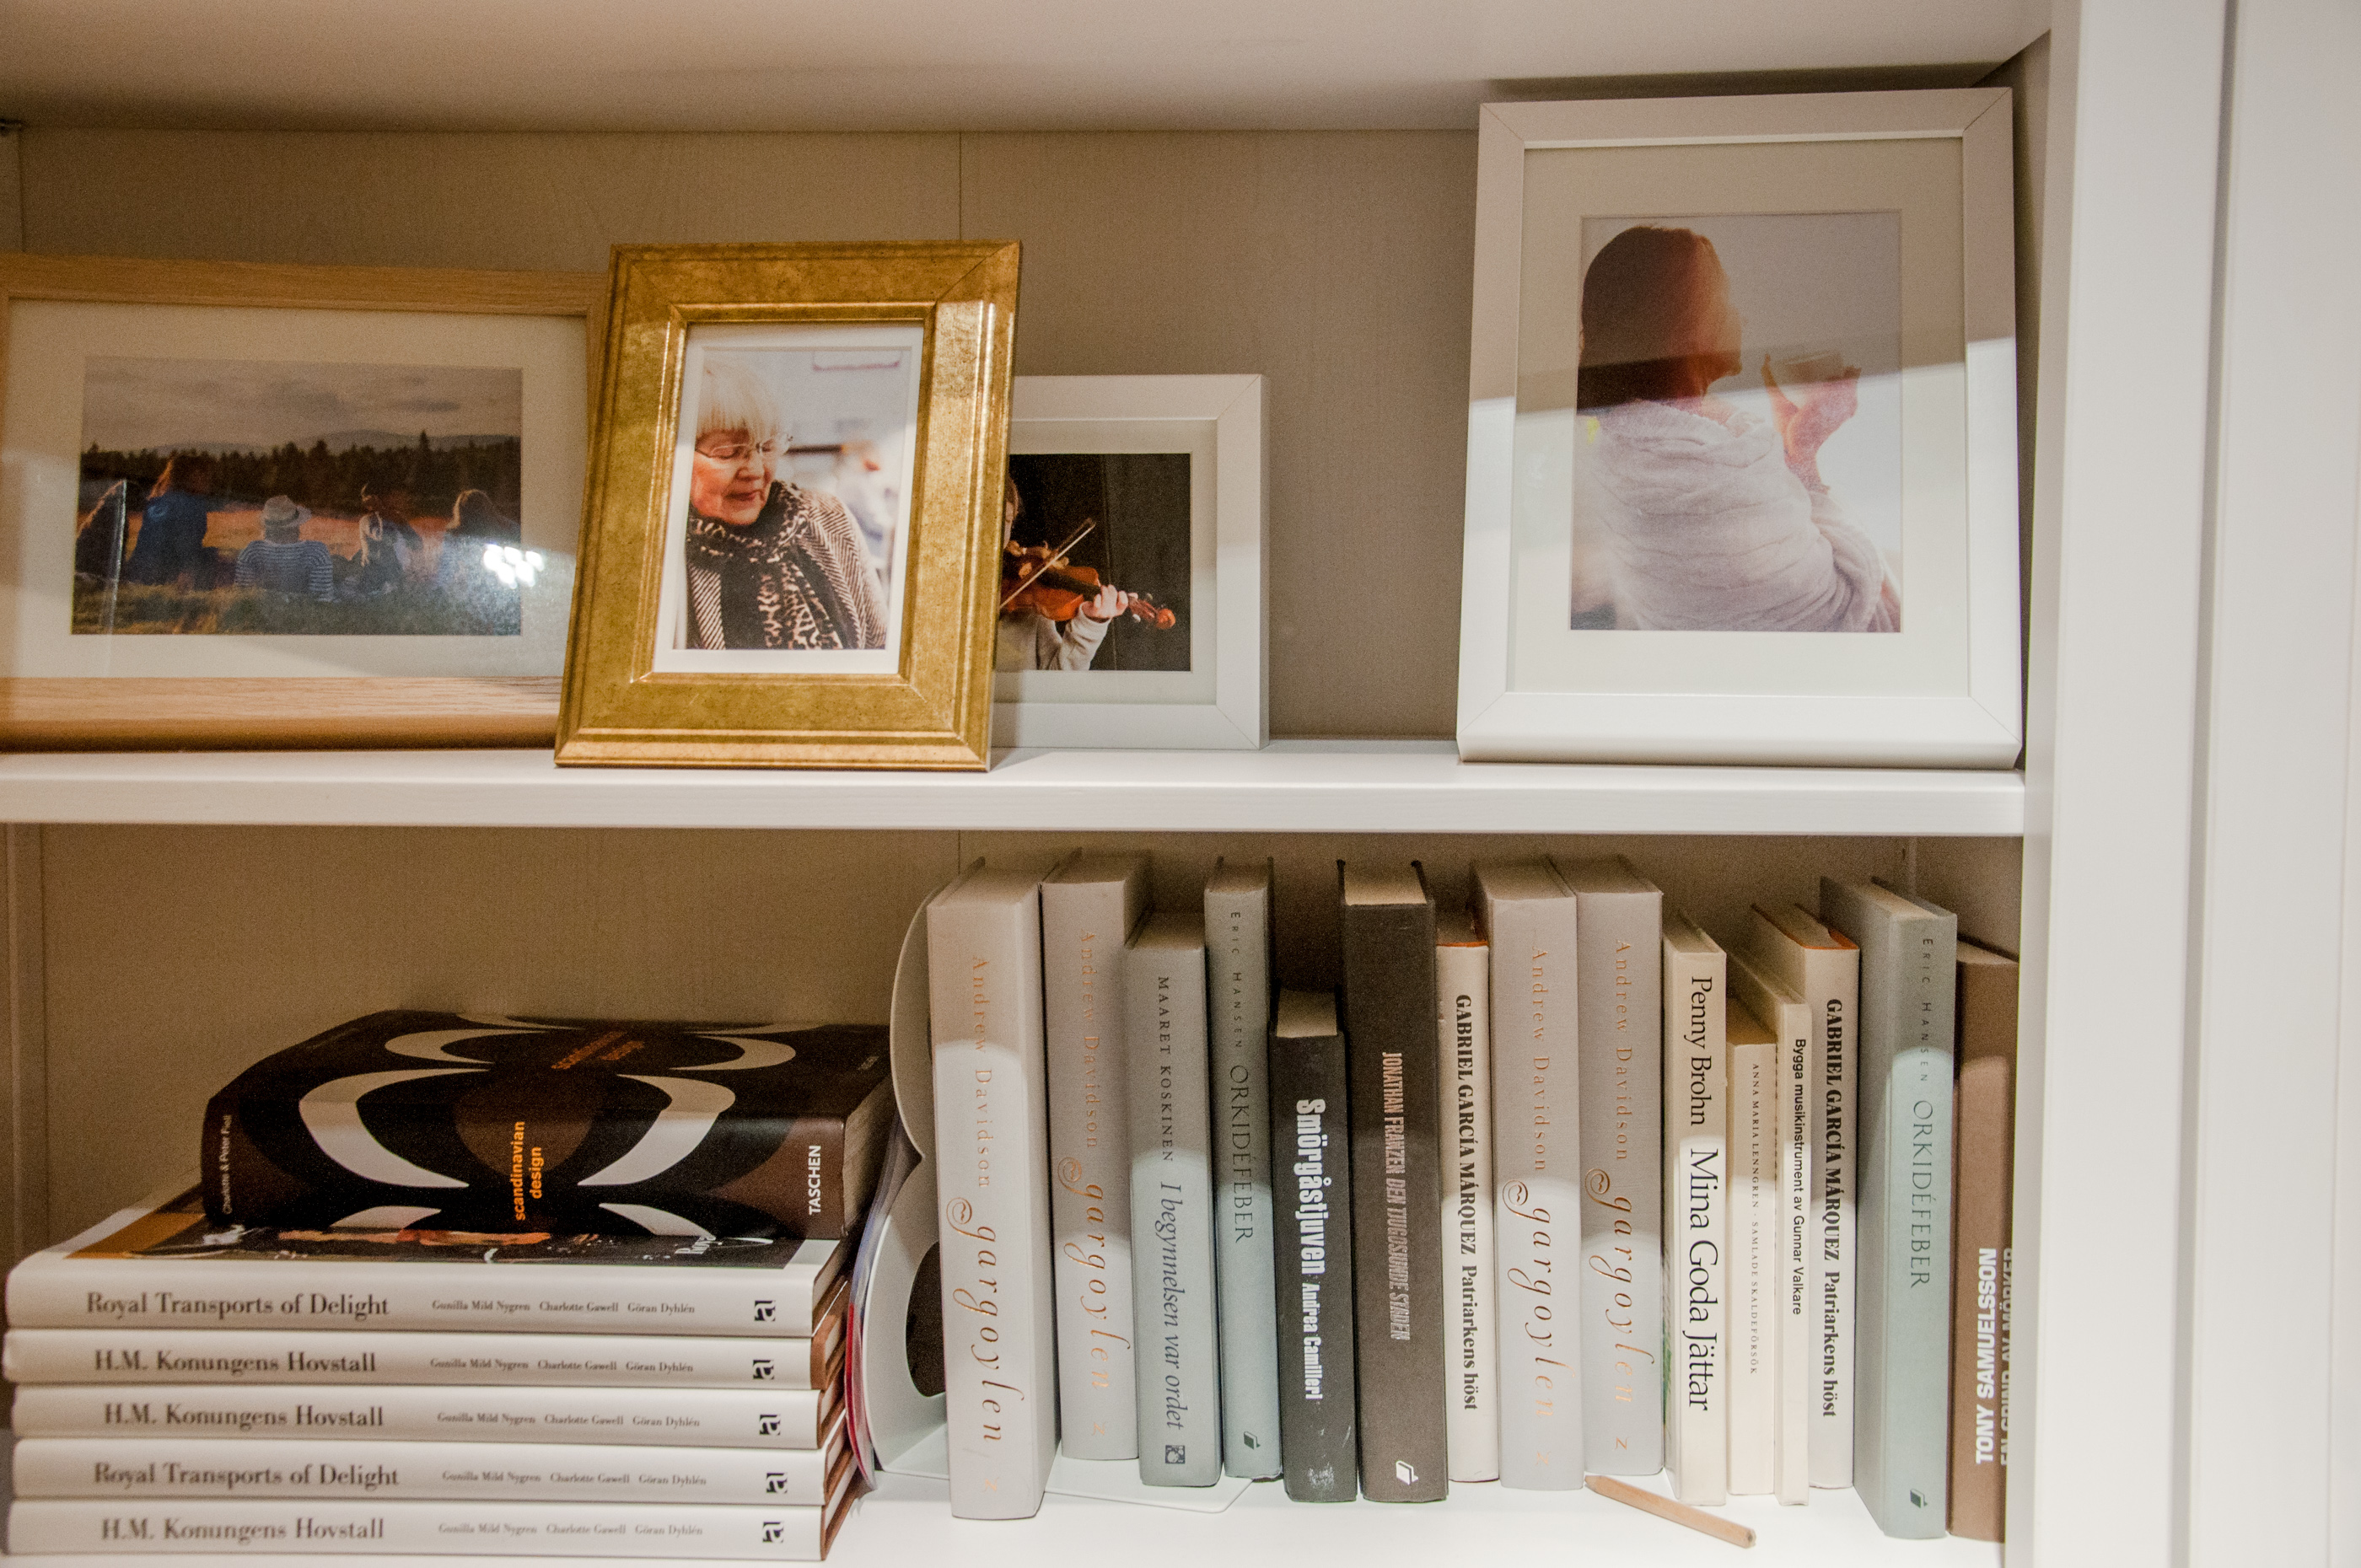 Bookshelves with books and photo frames, Antique, Photo, Indoor, Interior, HQ Photo